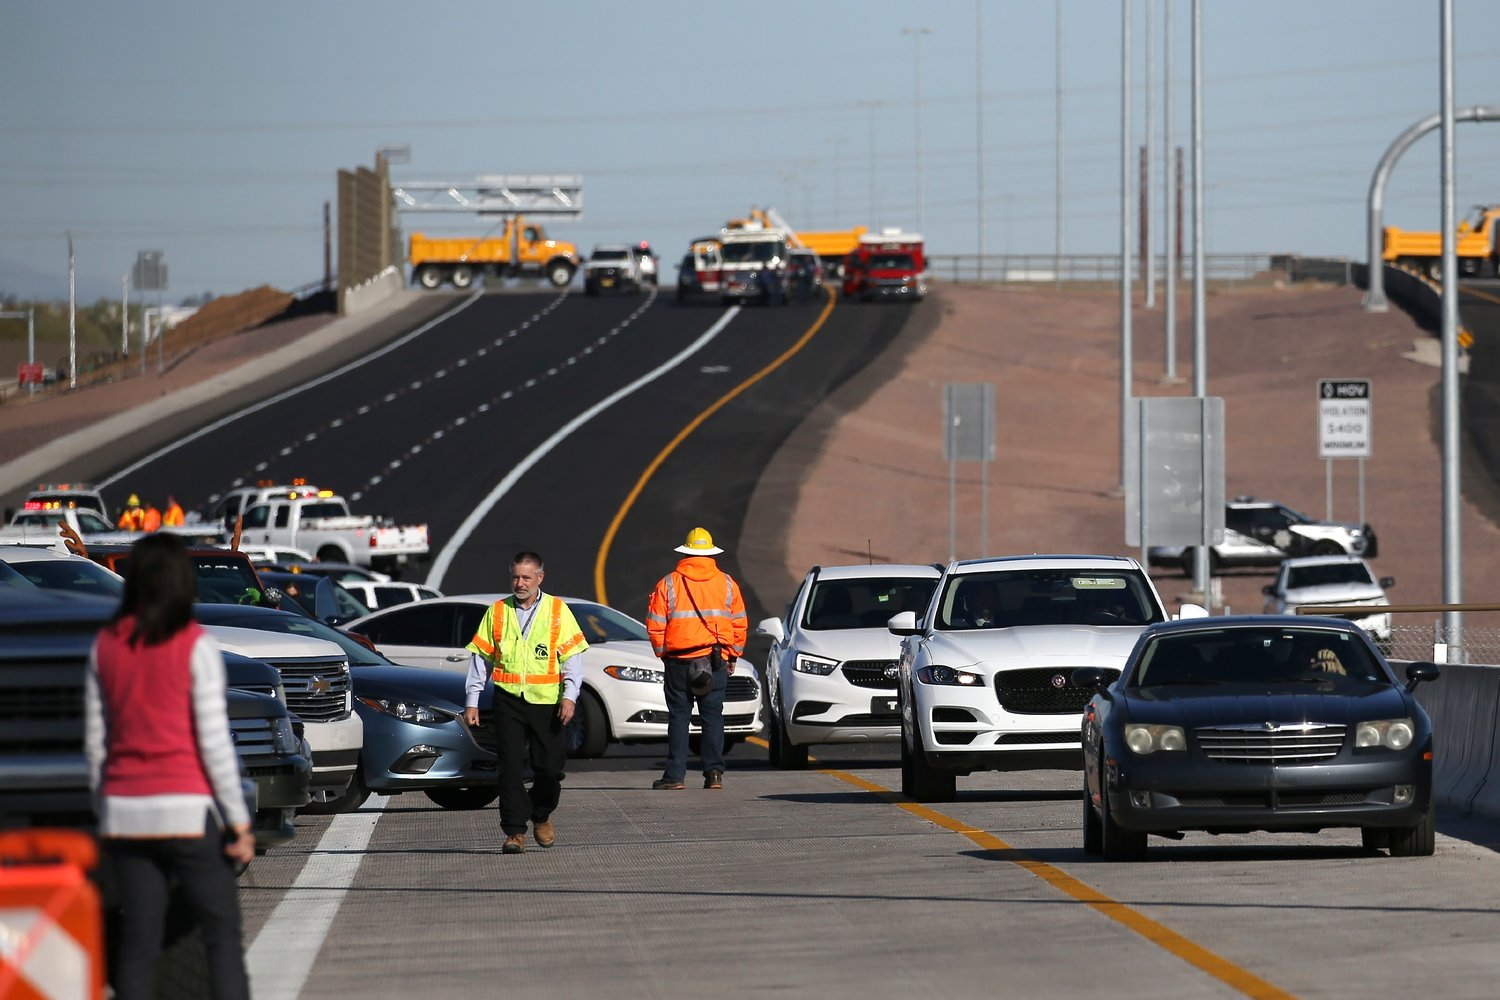 Vehicles drive along the new South Mountain Freeway after a christening event Dec. 18, 2019 in Phoenix. The ceremony comes as construction of the 22-mile $1.7 billion freeway is set to open by the end of the year, and will connect the West and East Valleys of Maricopa County.